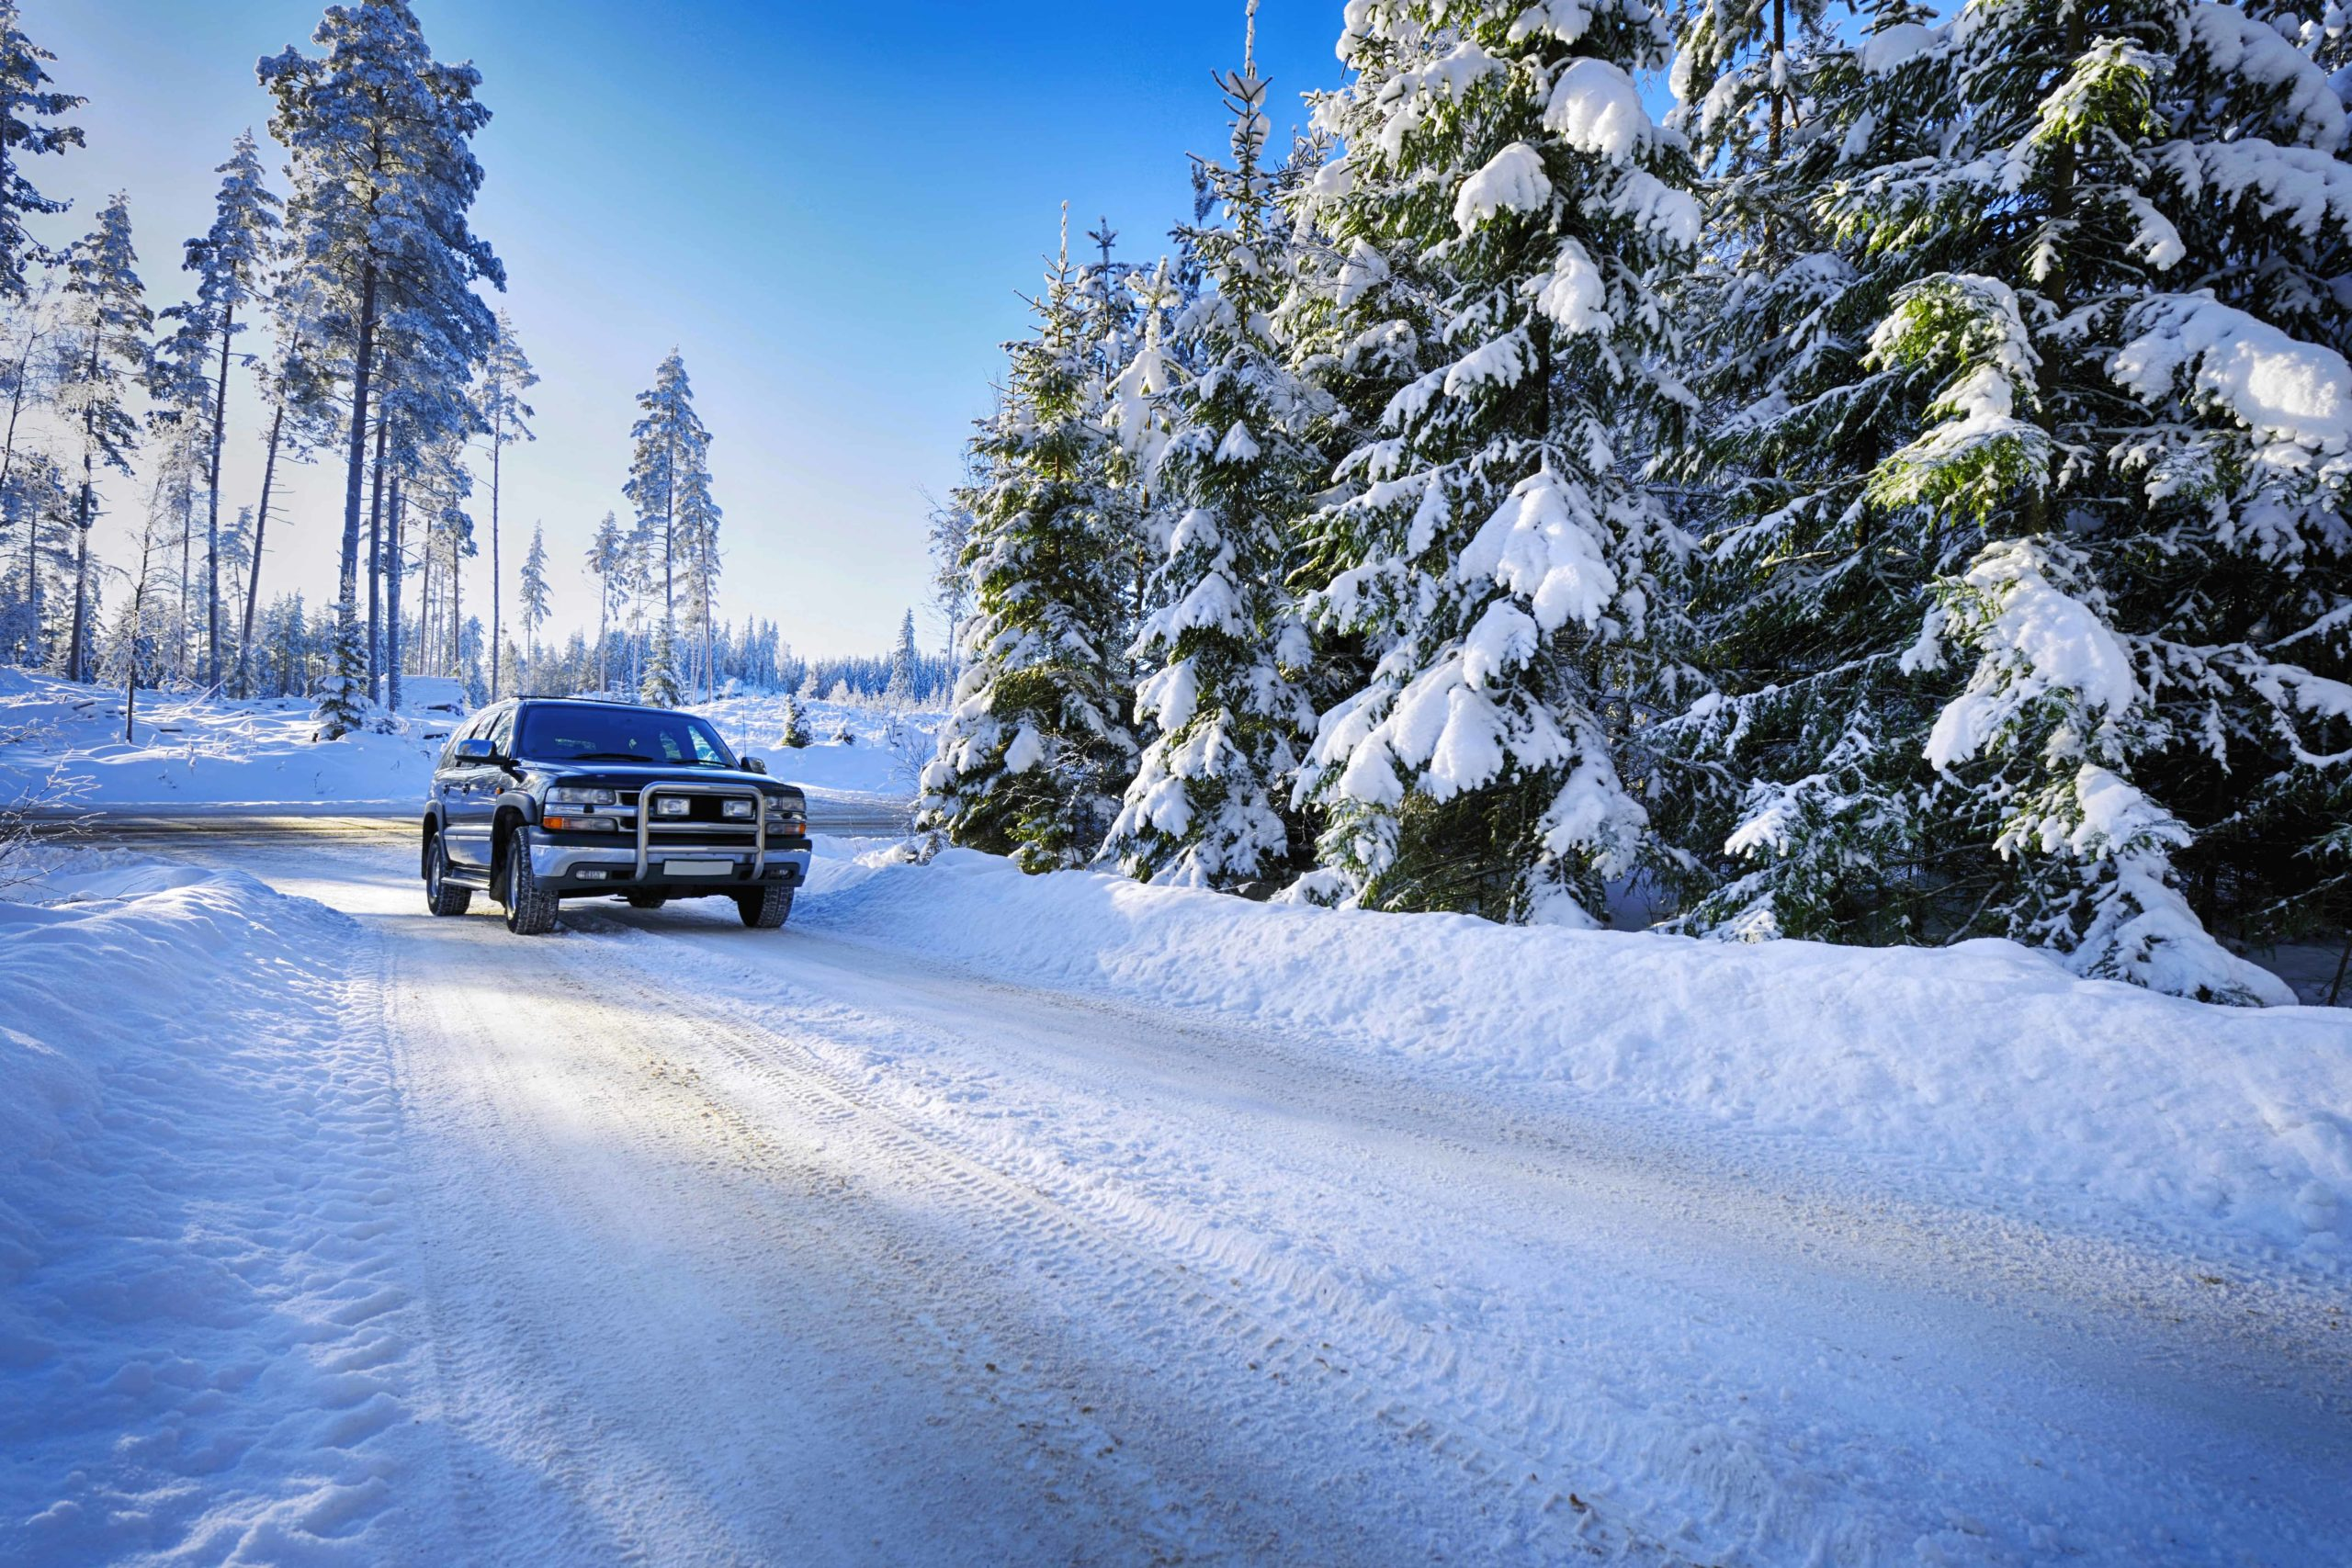 SUV driving on snowy road surrounded by pines in winter